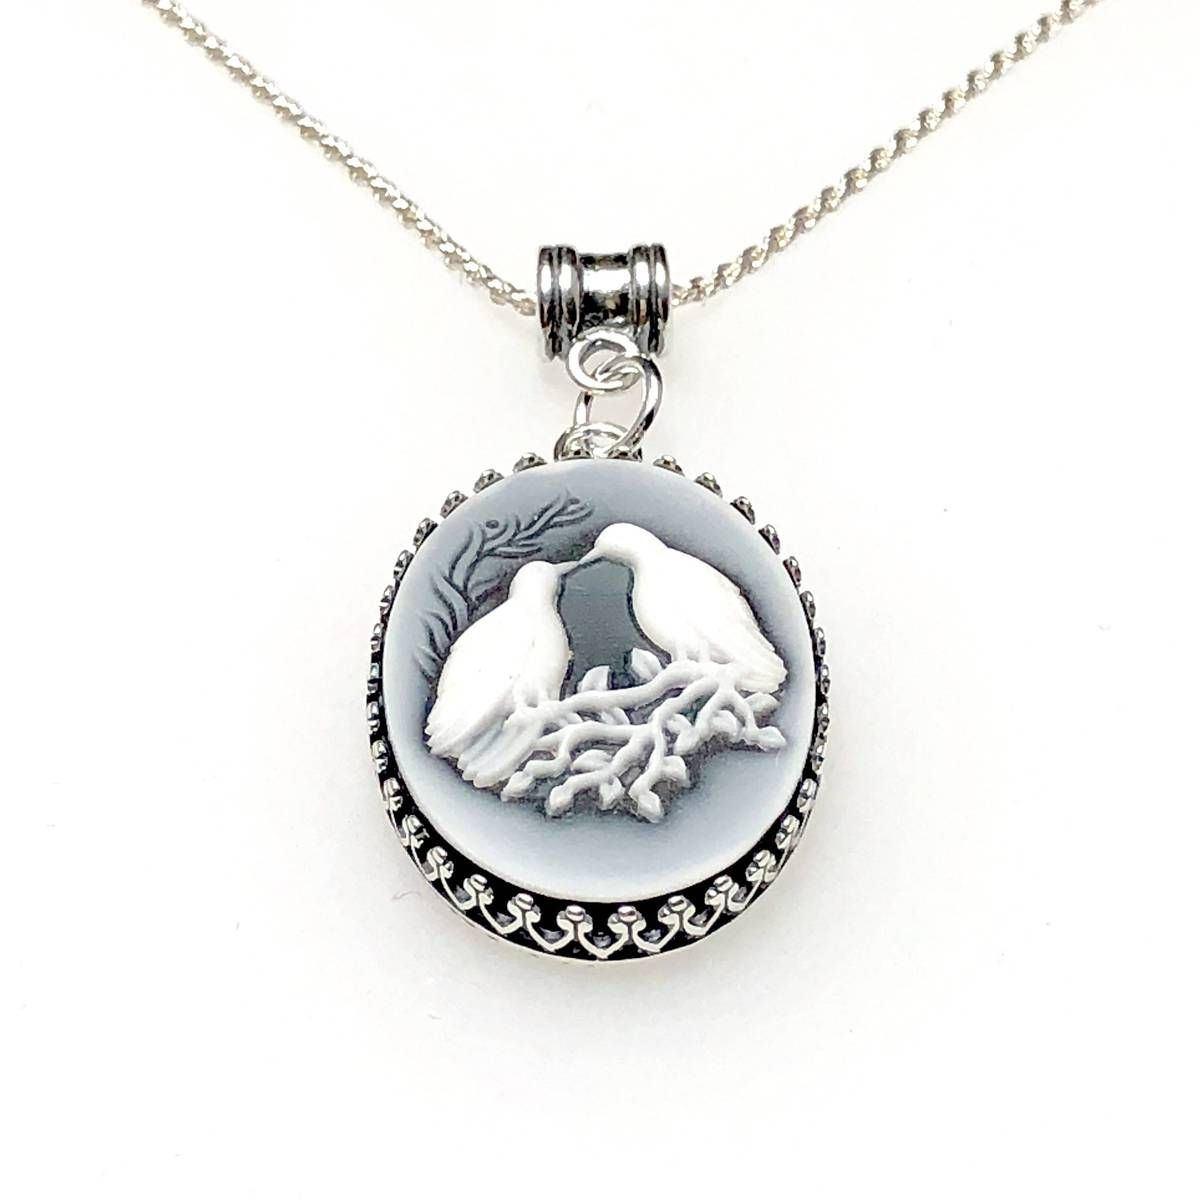 Anniversary gift for wife bird necklace blue cameo